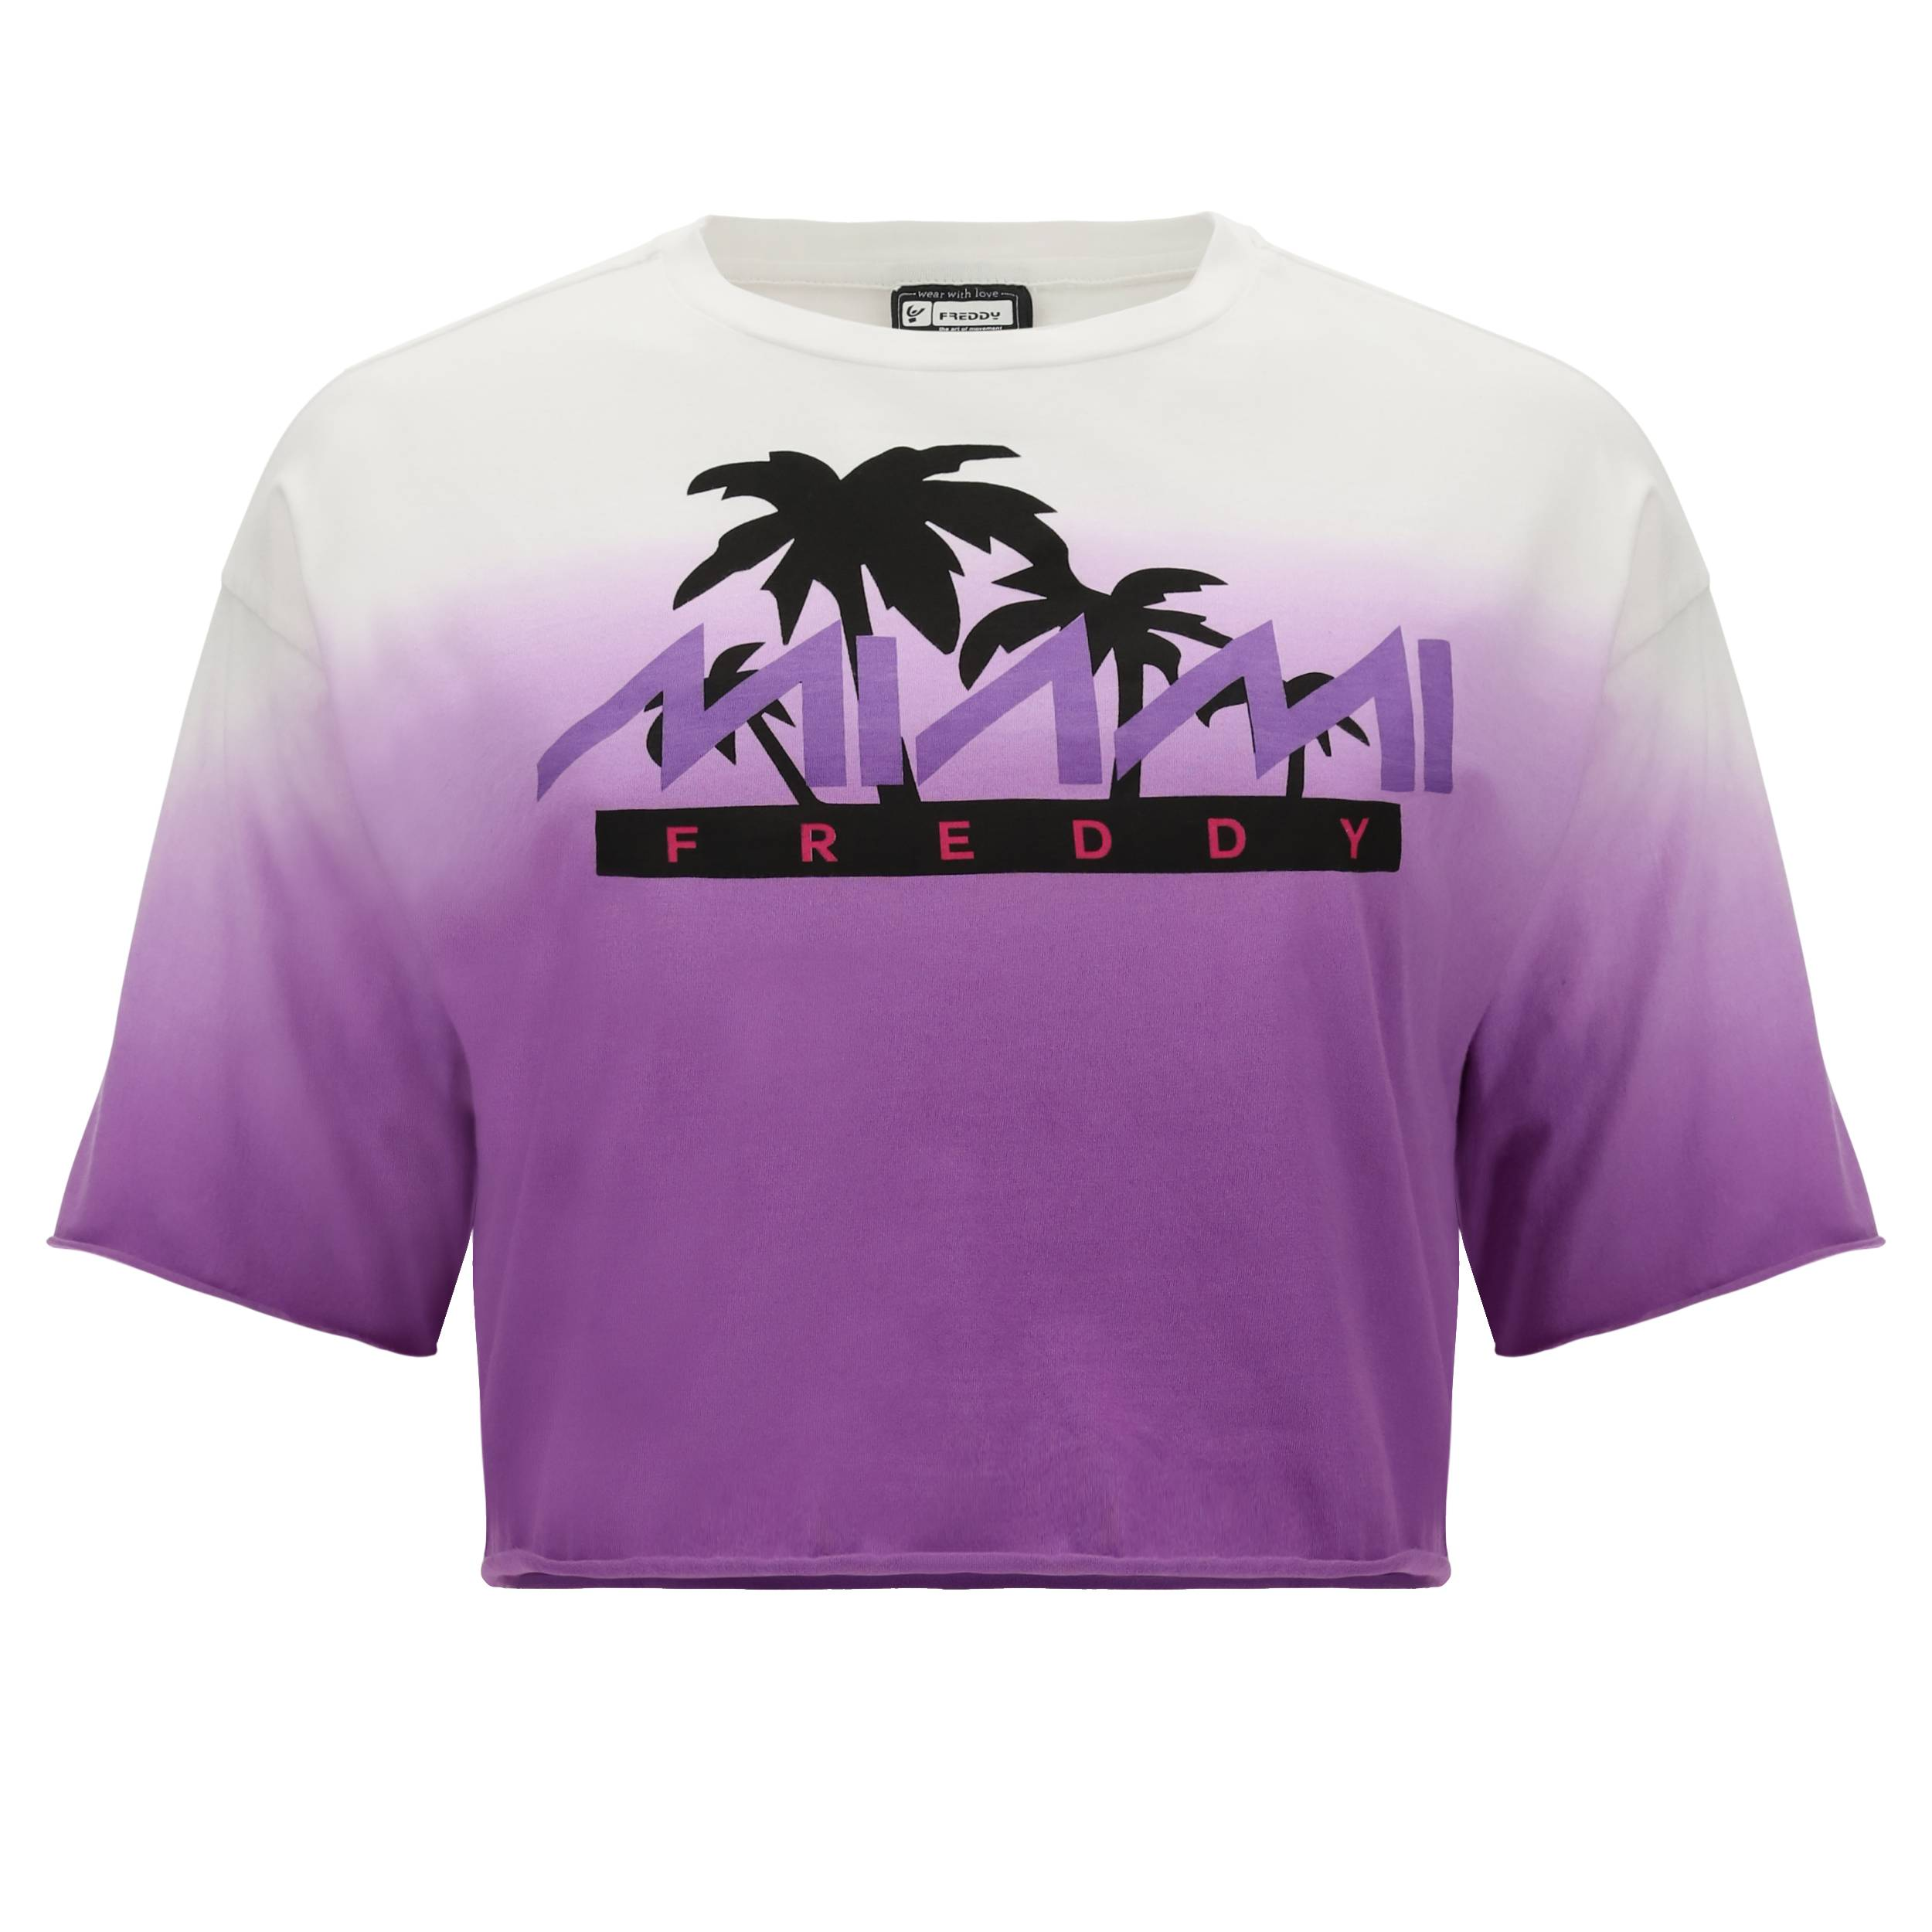 """Freddy Oversize cropped dégradé t-shirt with a """"Freddy Miami"""" print  - Woman - White-Chive Blossom - Size: Large"""